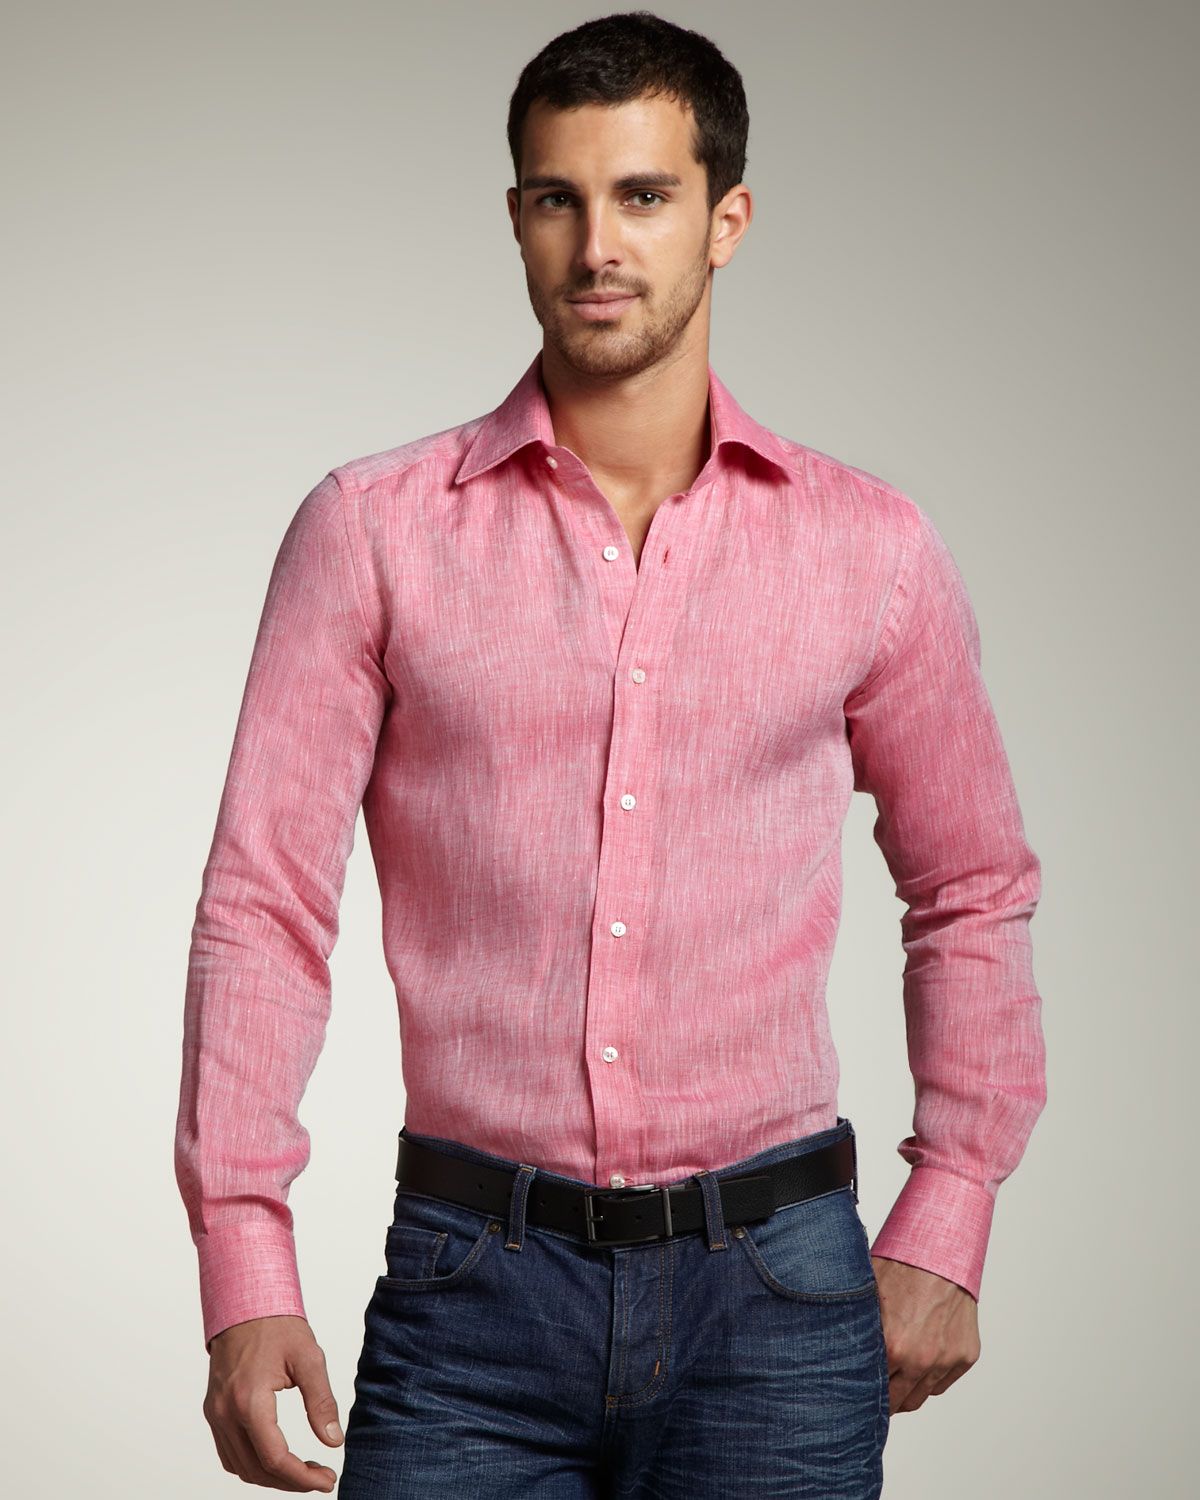 Lyst - Etro Linen Sport Shirt in Pink for Men